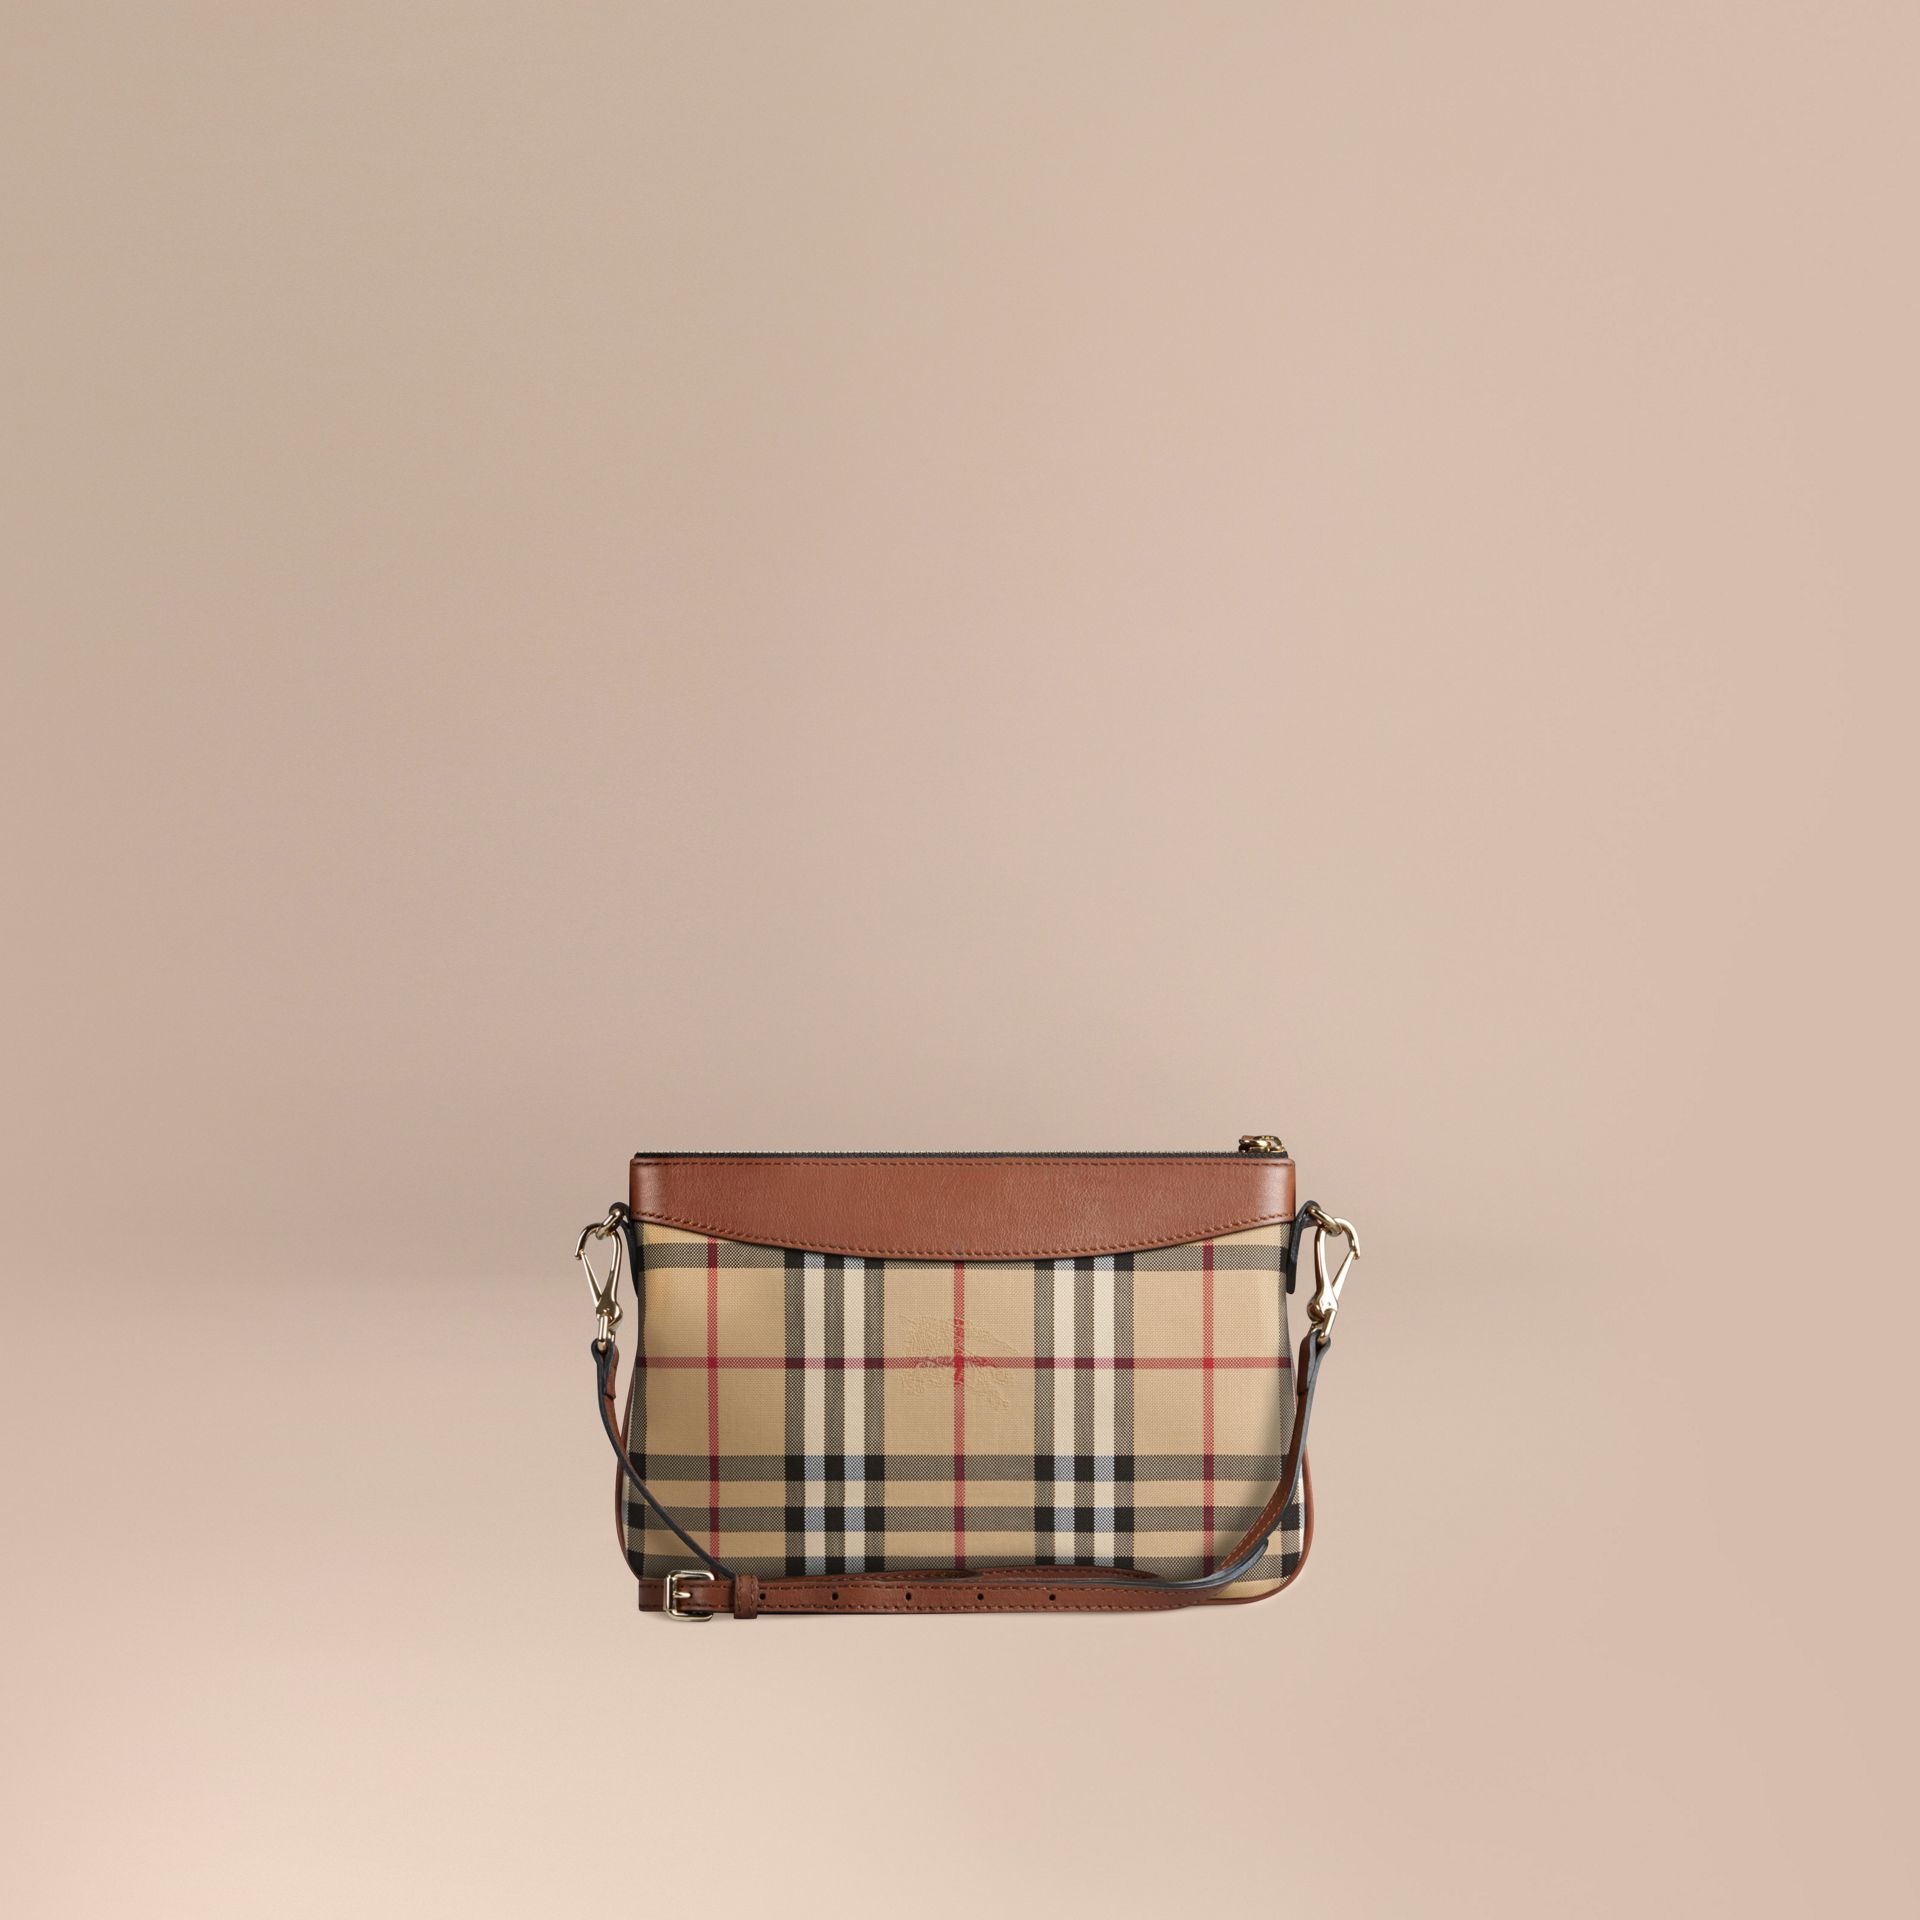 Horseferry Check and Leather Clutch Bag in Tan - Women | Burberry - gallery image 6